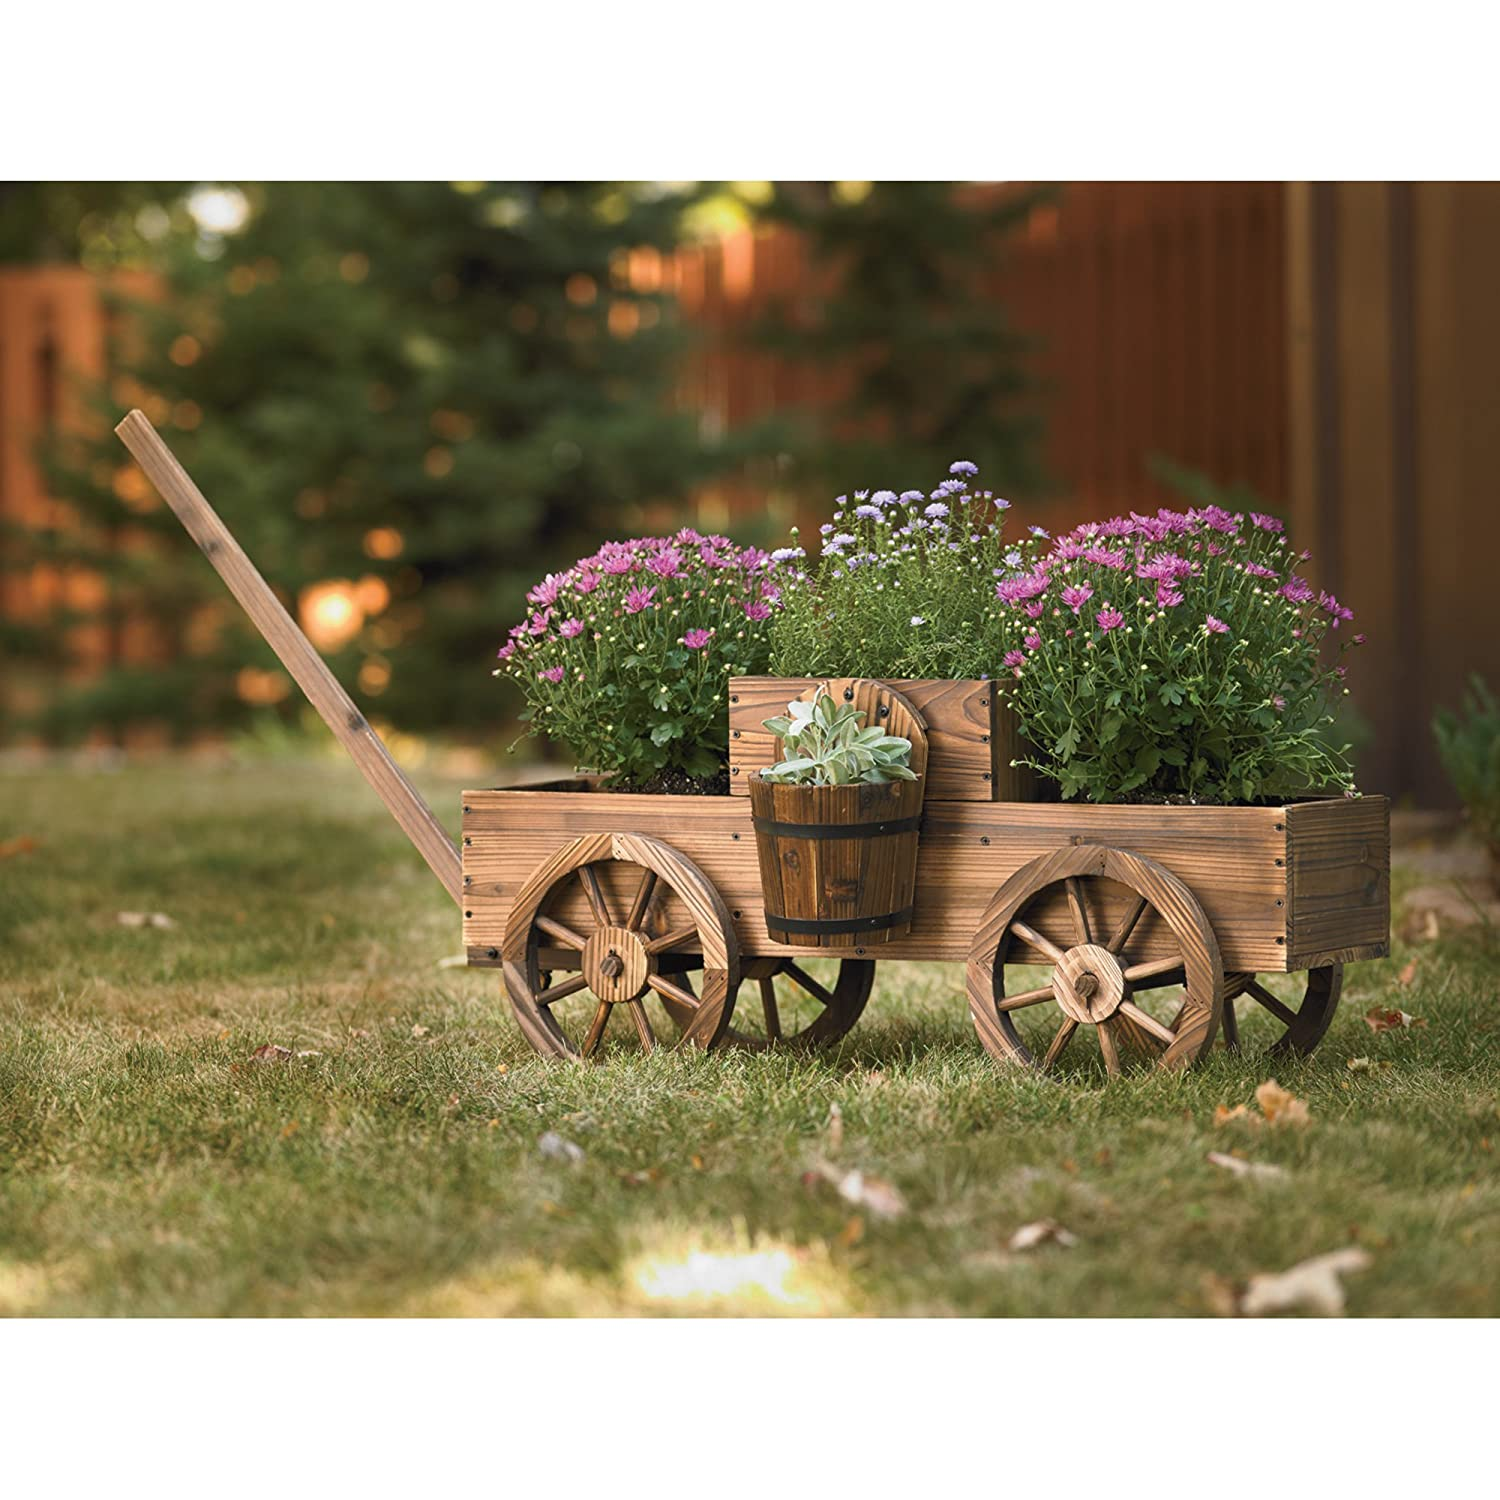 Gardening Carts - Home Design Ideas and Pictures